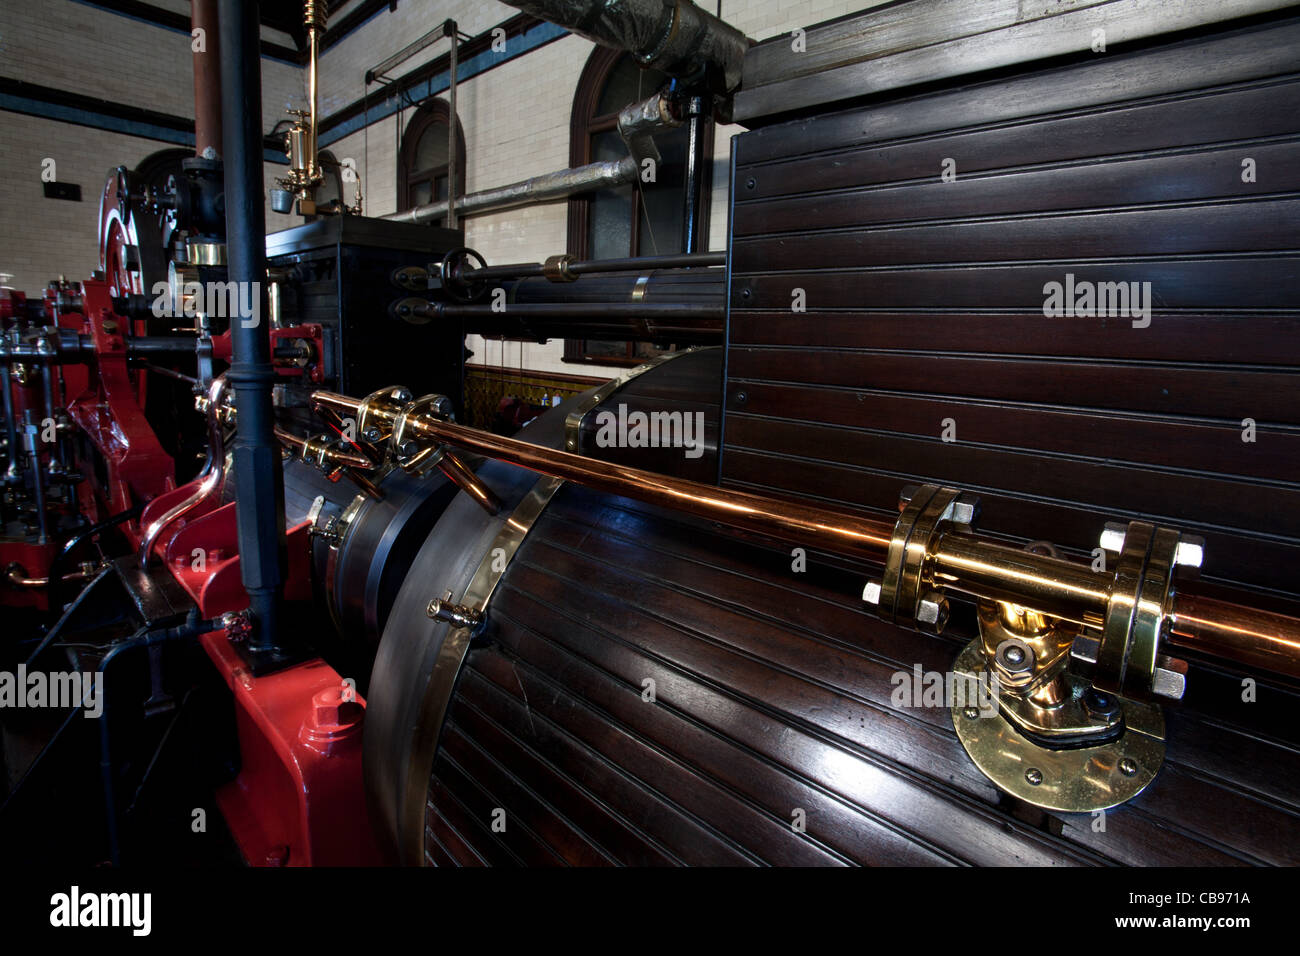 Tandem sewage pumping engine, Old Pumping Station, Cambridge, UK - Stock Image